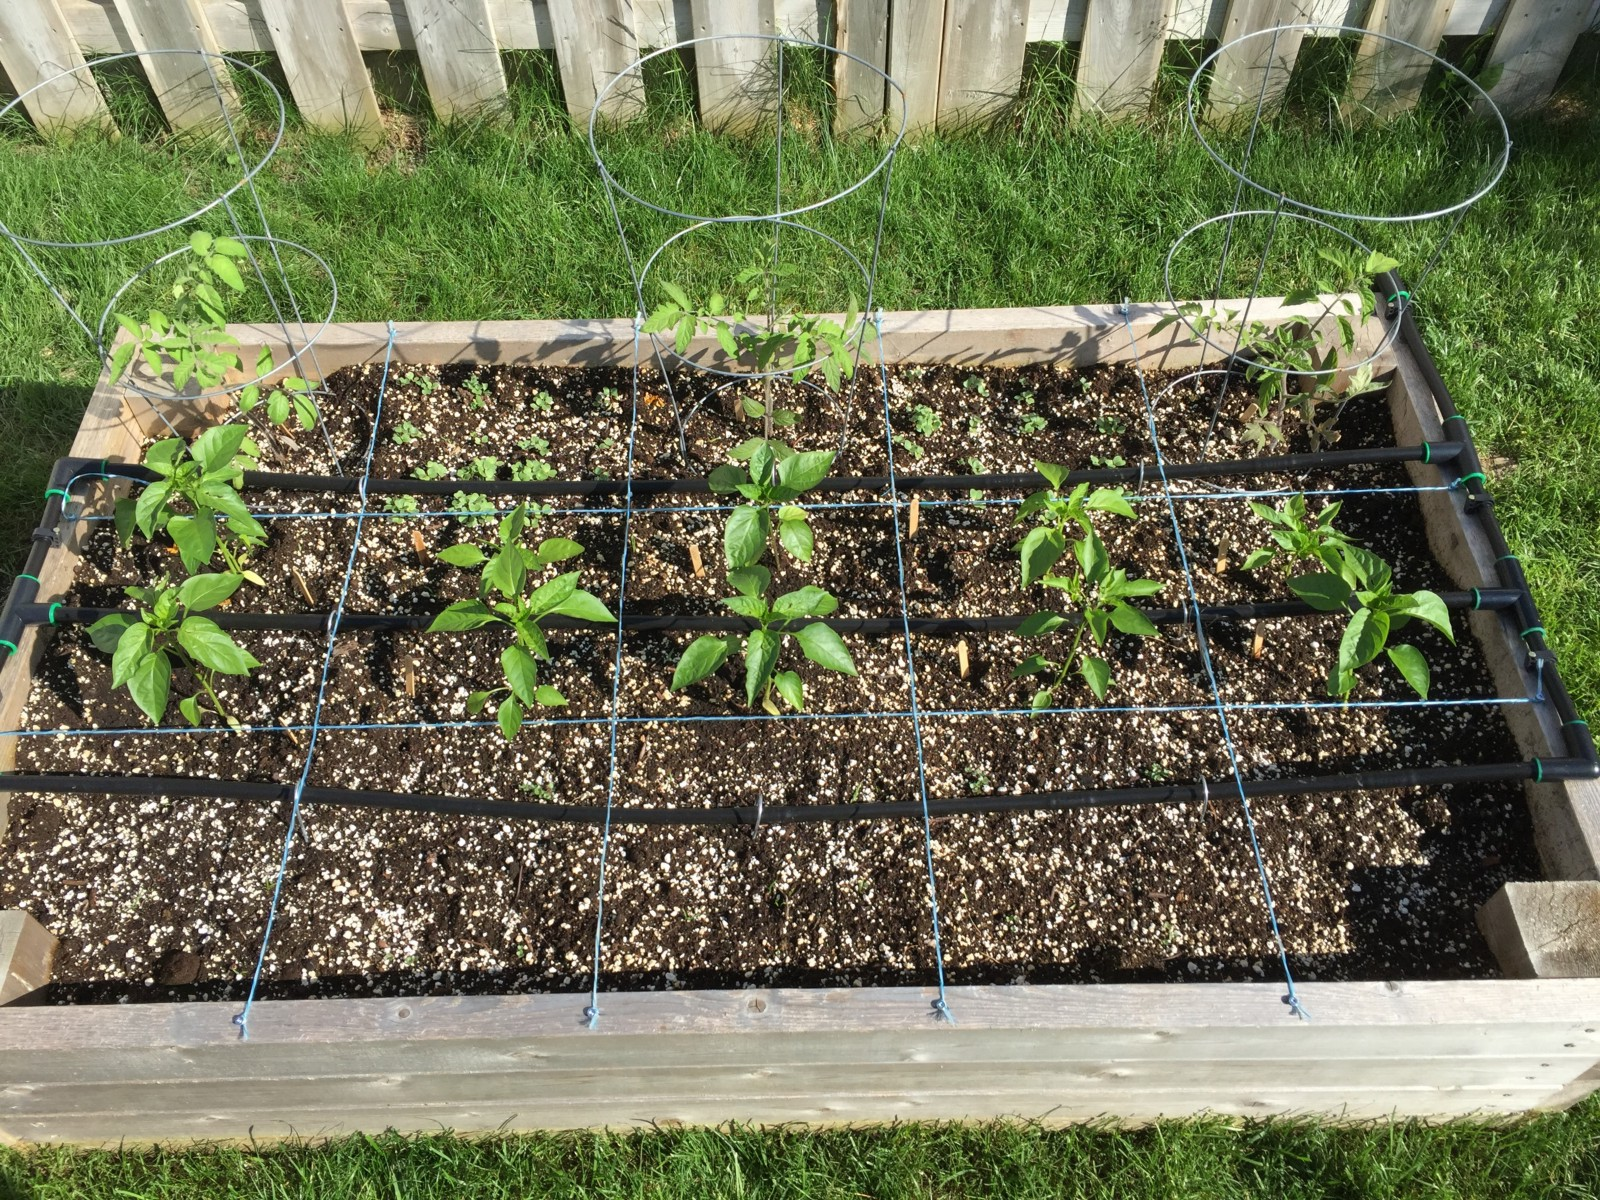 Raised Garden Beds, Planted With 3 Tomato Plants And 10 Pepper Plants,  Separated Into 15 Squares With Drip Line Irrigation In Three Lines Across  The Length ...